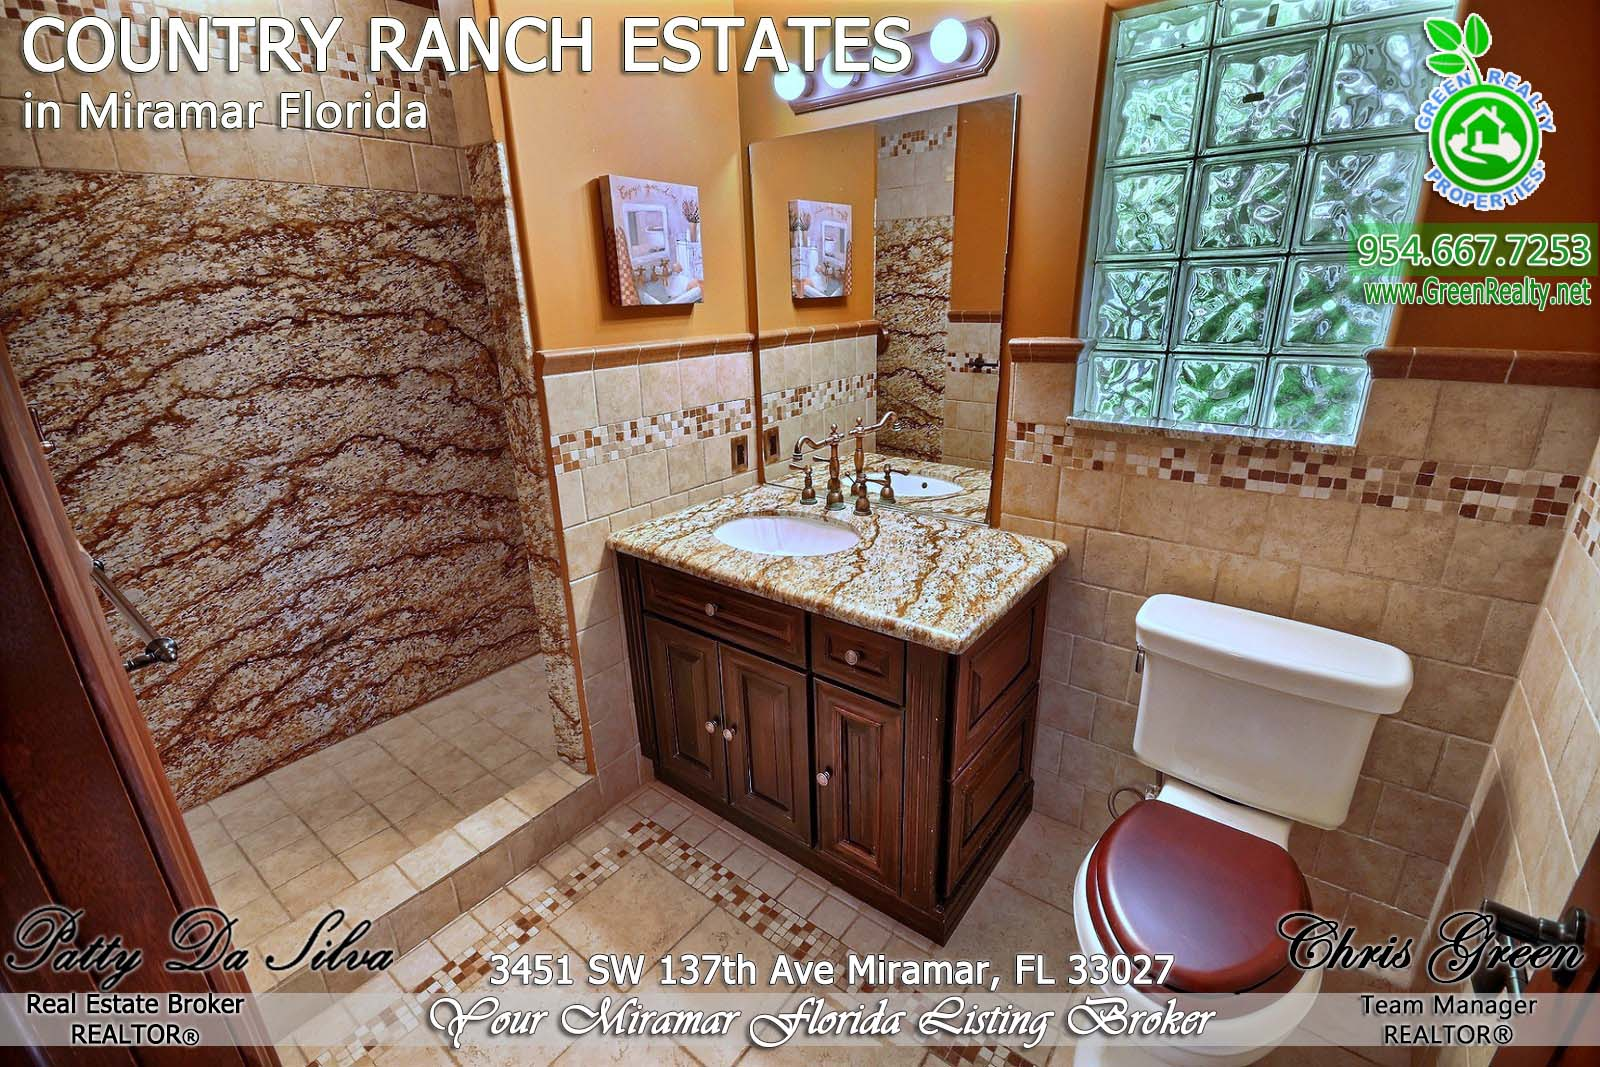 39 Miramar Luxury Real Estate